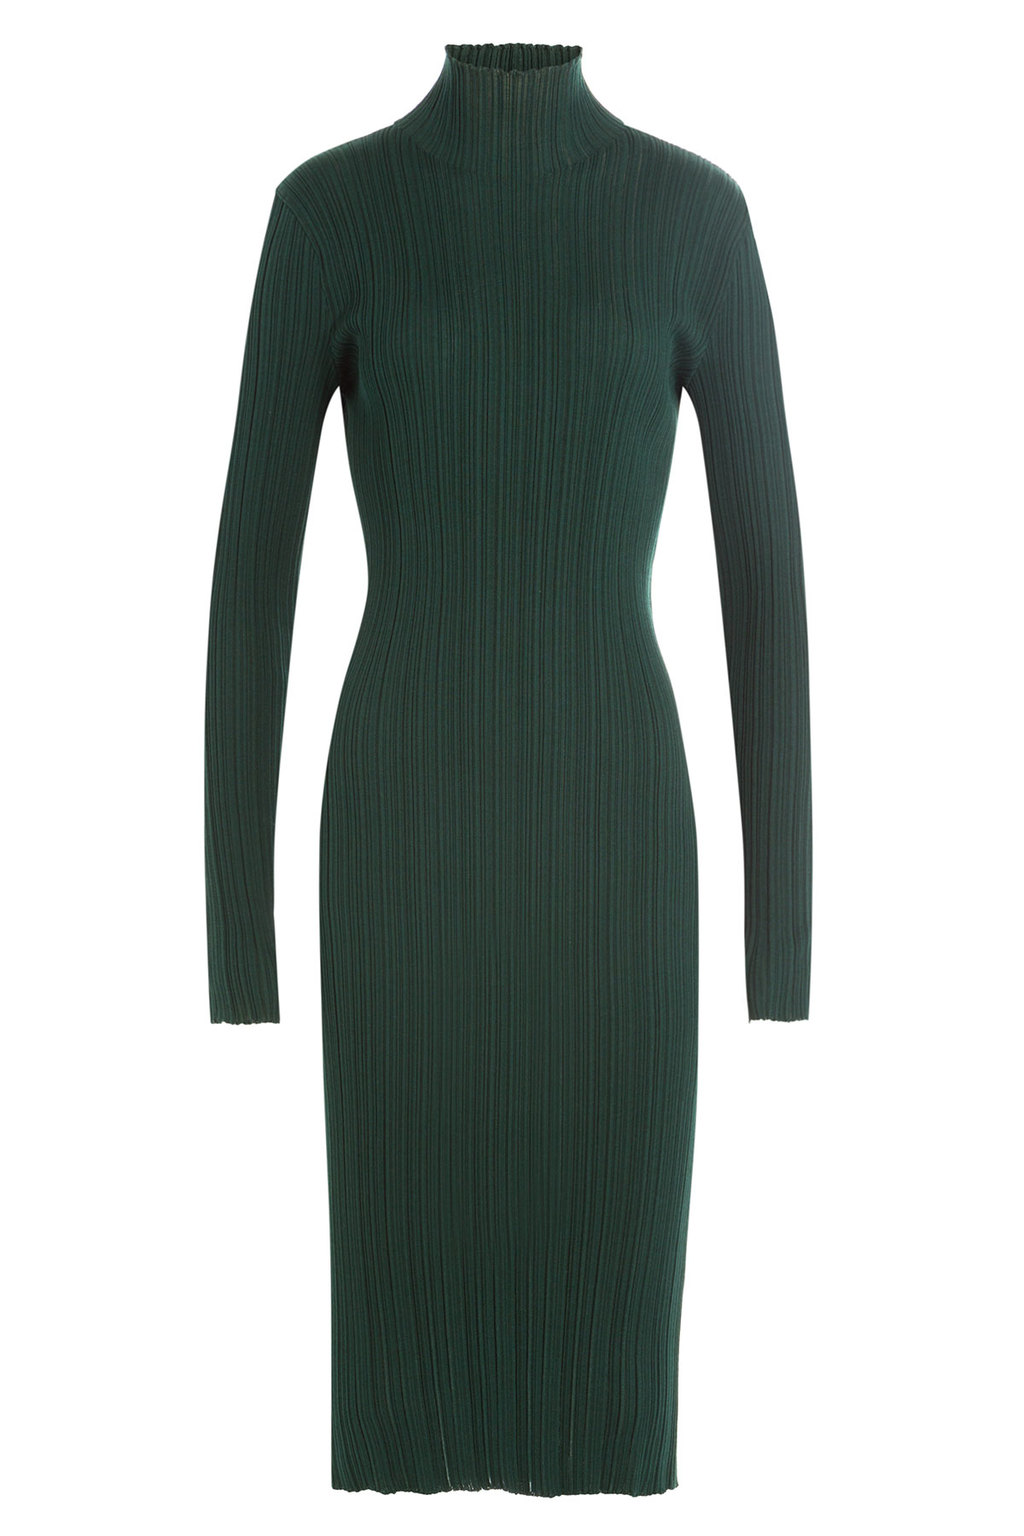 Wool Silk Turtleneck Dress - style: jumper dress; length: calf length; pattern: plain; neckline: roll neck; predominant colour: dark green; occasions: evening; fit: body skimming; fibres: wool - mix; sleeve length: long sleeve; sleeve style: standard; pattern type: fabric; texture group: other - light to midweight; season: a/w 2016; wardrobe: event